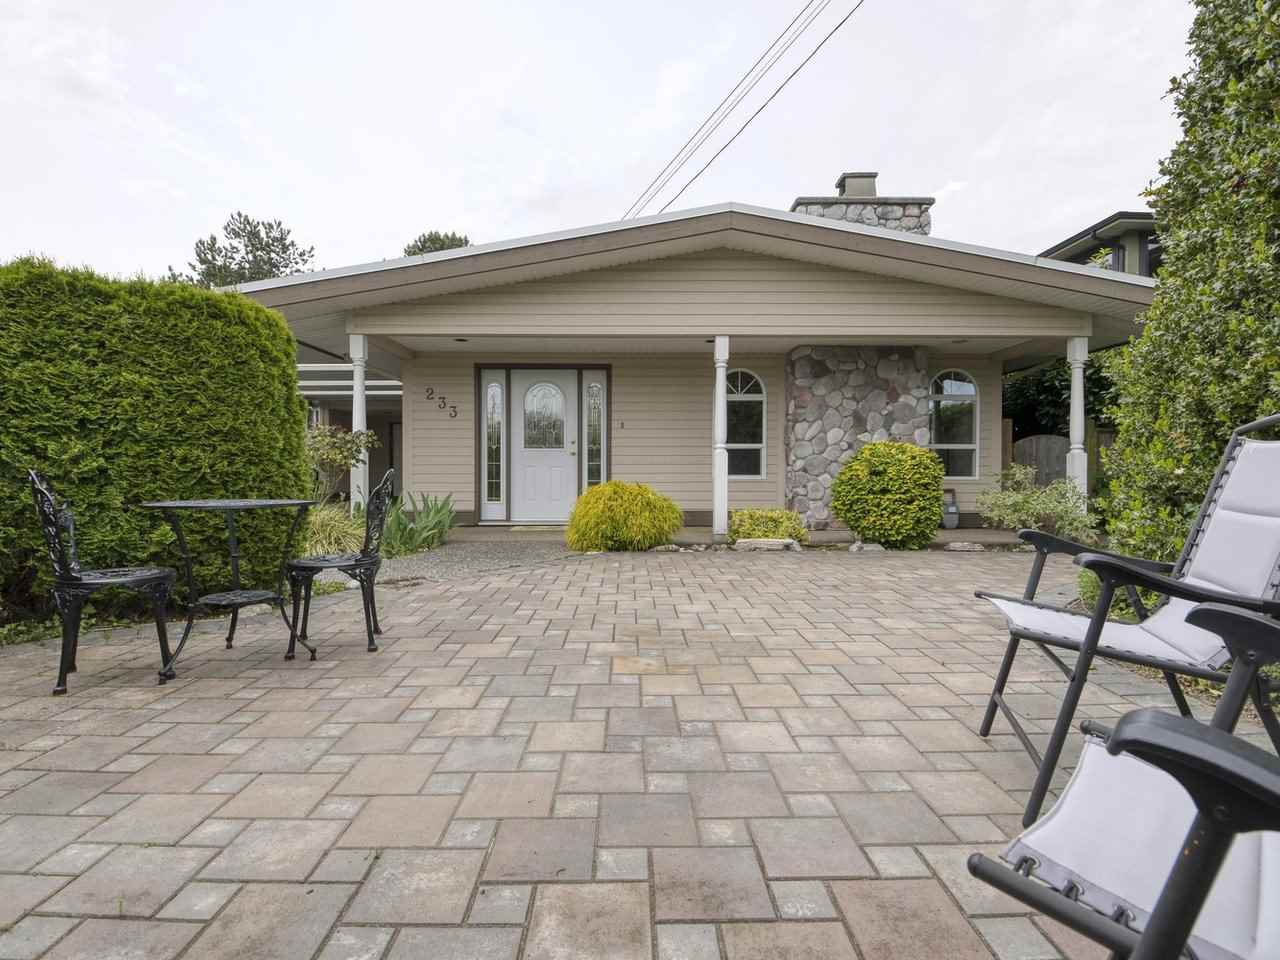 """Main Photo: 233 67 Street in Tsawwassen: Boundary Beach House for sale in """"Bounday Bay"""" : MLS®# R2455324"""